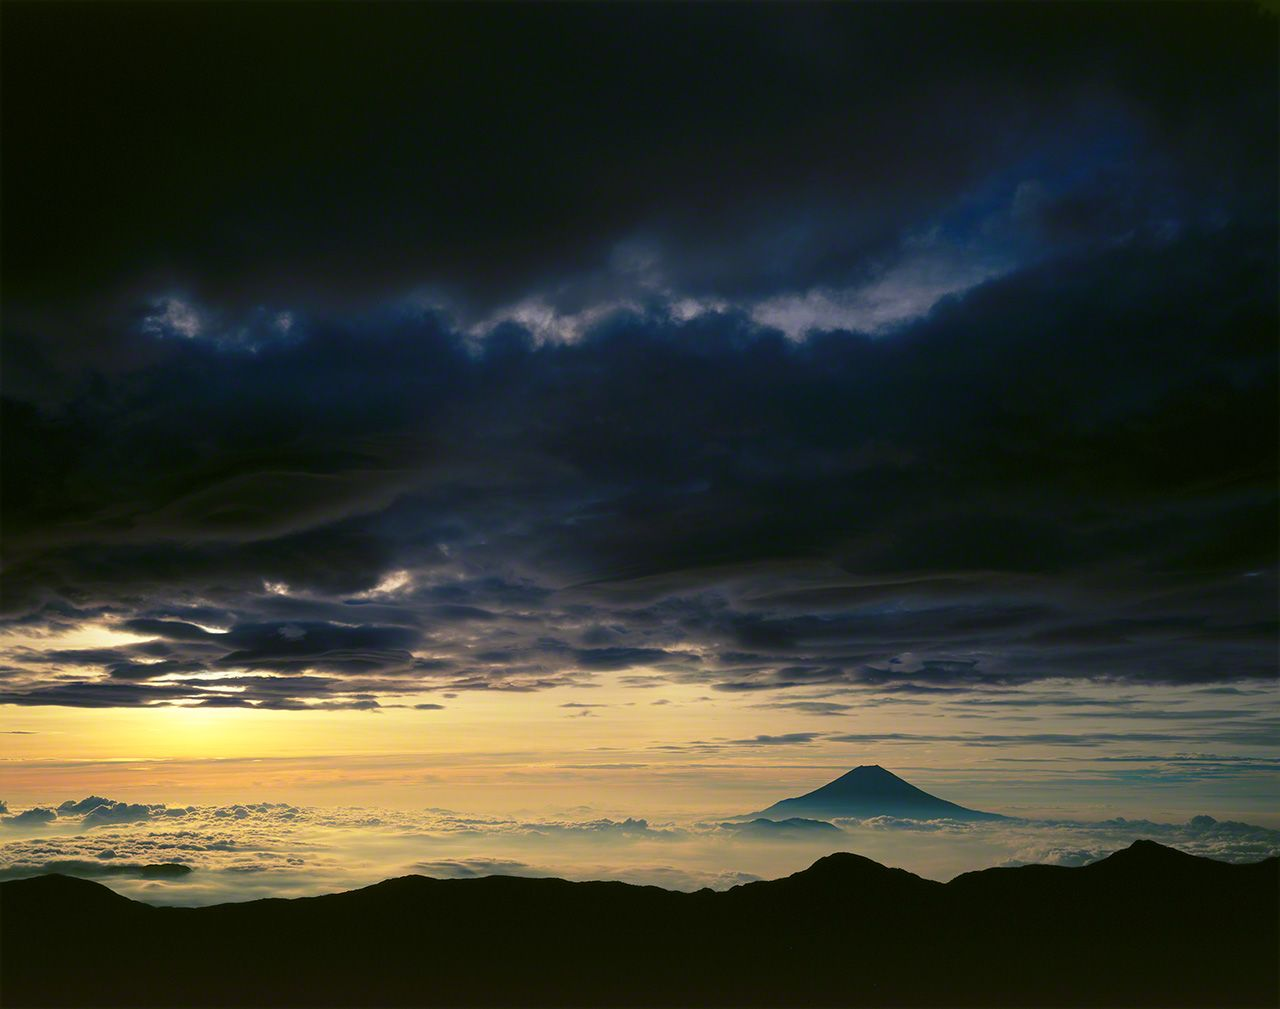 Mount Fuji as seen from Mount Akaishi in the Southern Alps.